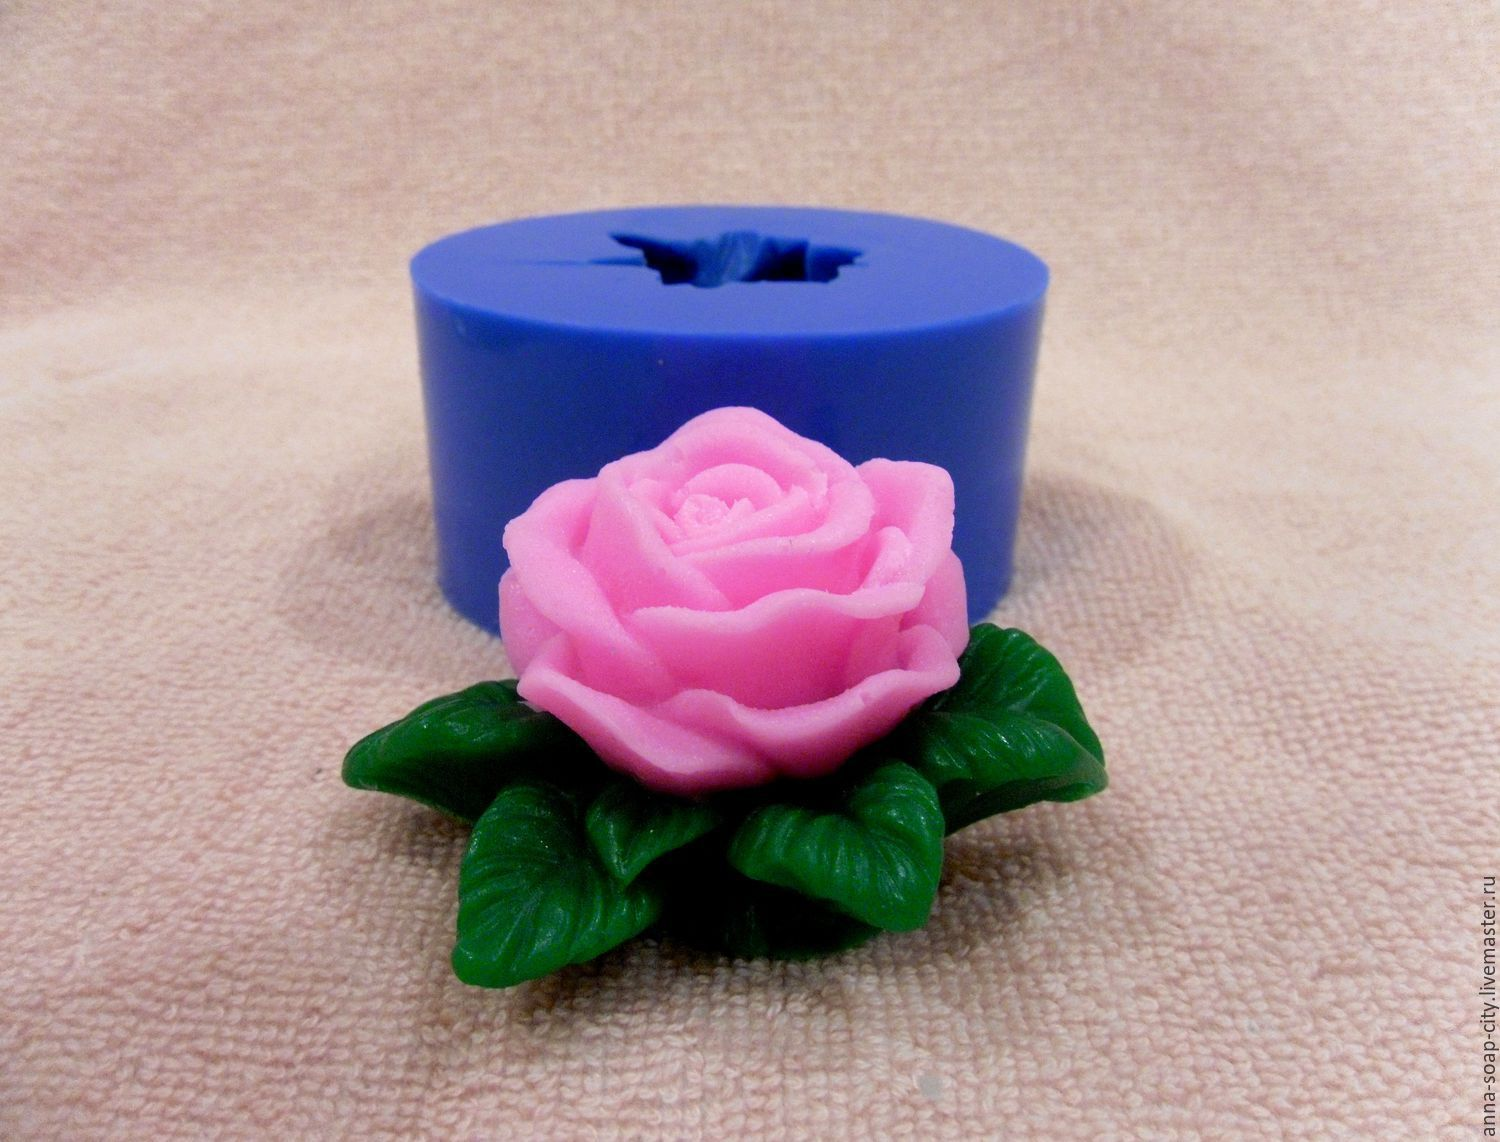 Silicone mold for soap and candles ' rosette', Form, Arkhangelsk,  Фото №1